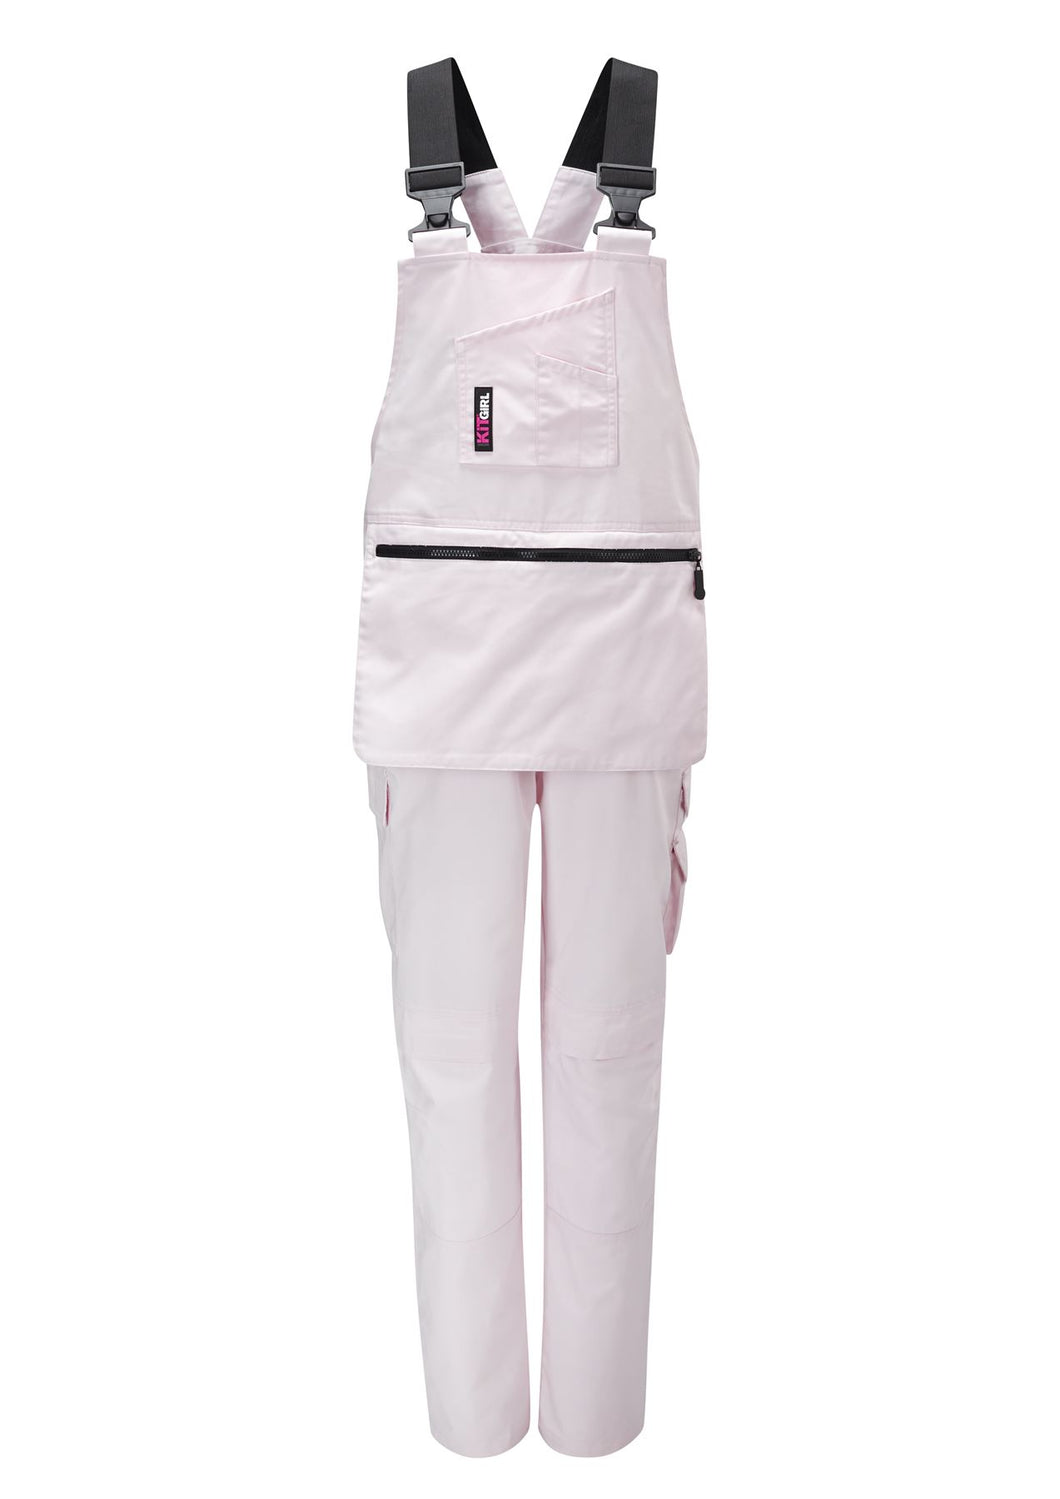 Womens Painters Bib and Brace - Pink - Work Kit Girl